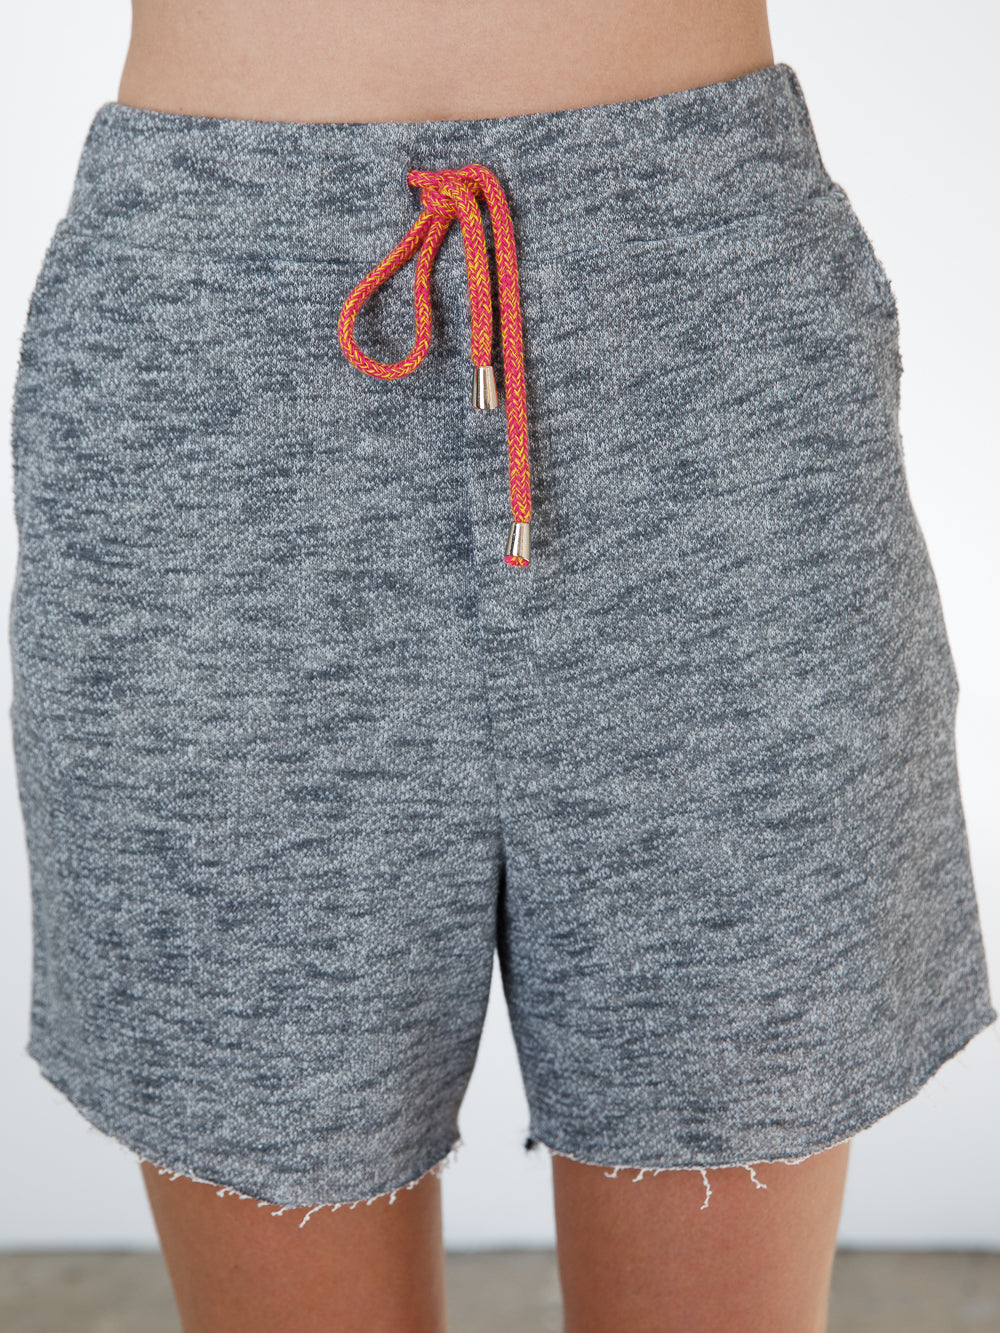 The Champ Sweatshort